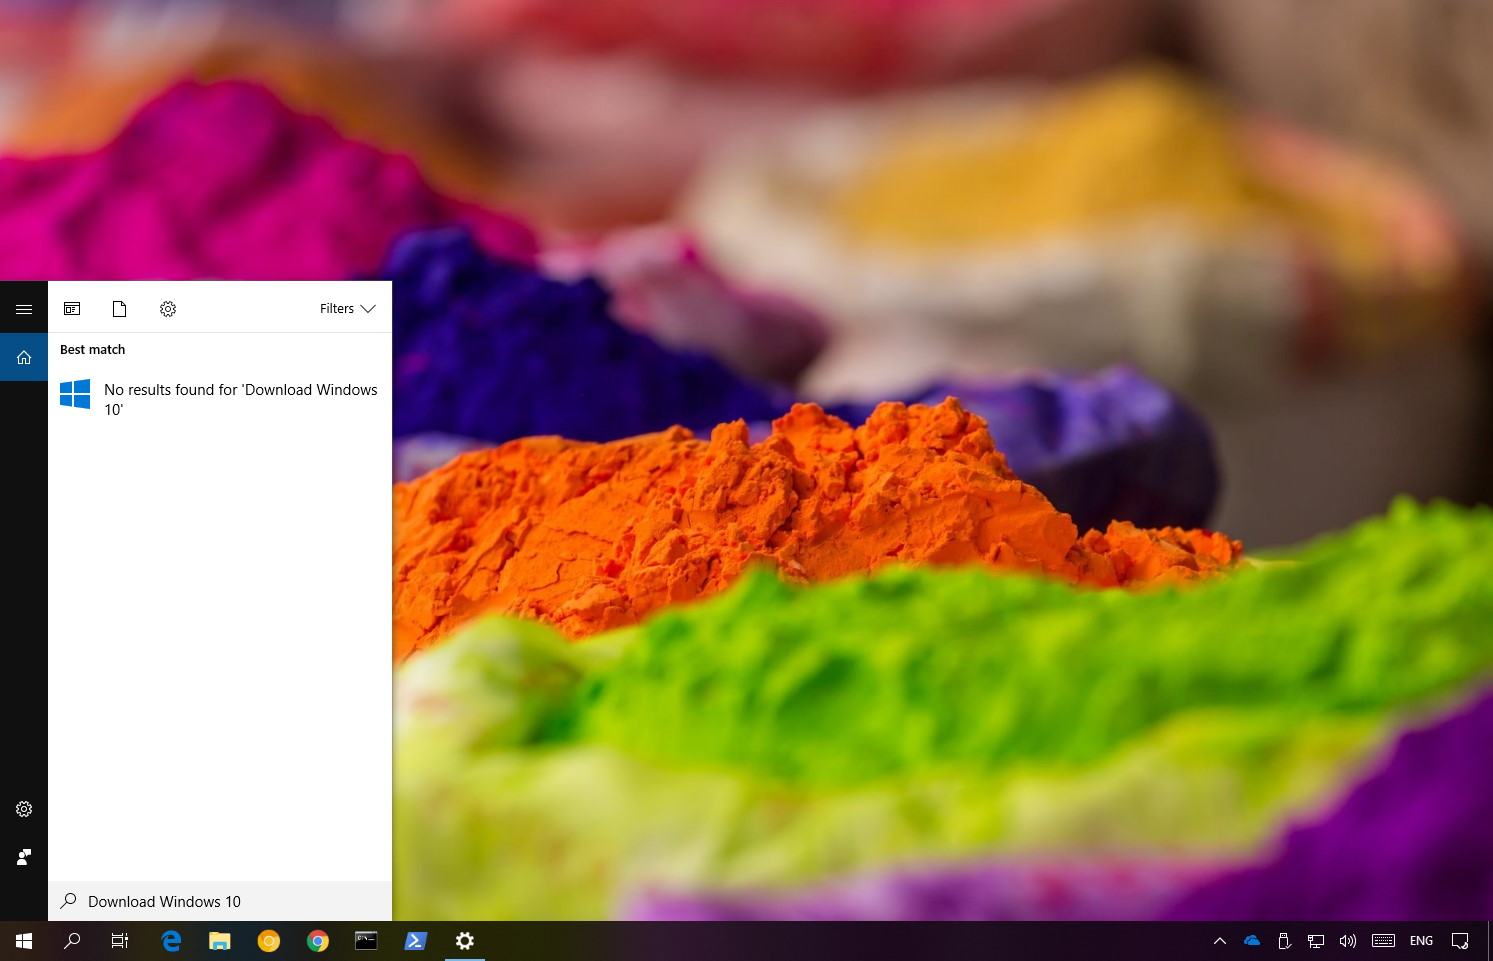 Disable web search results on Windows 10